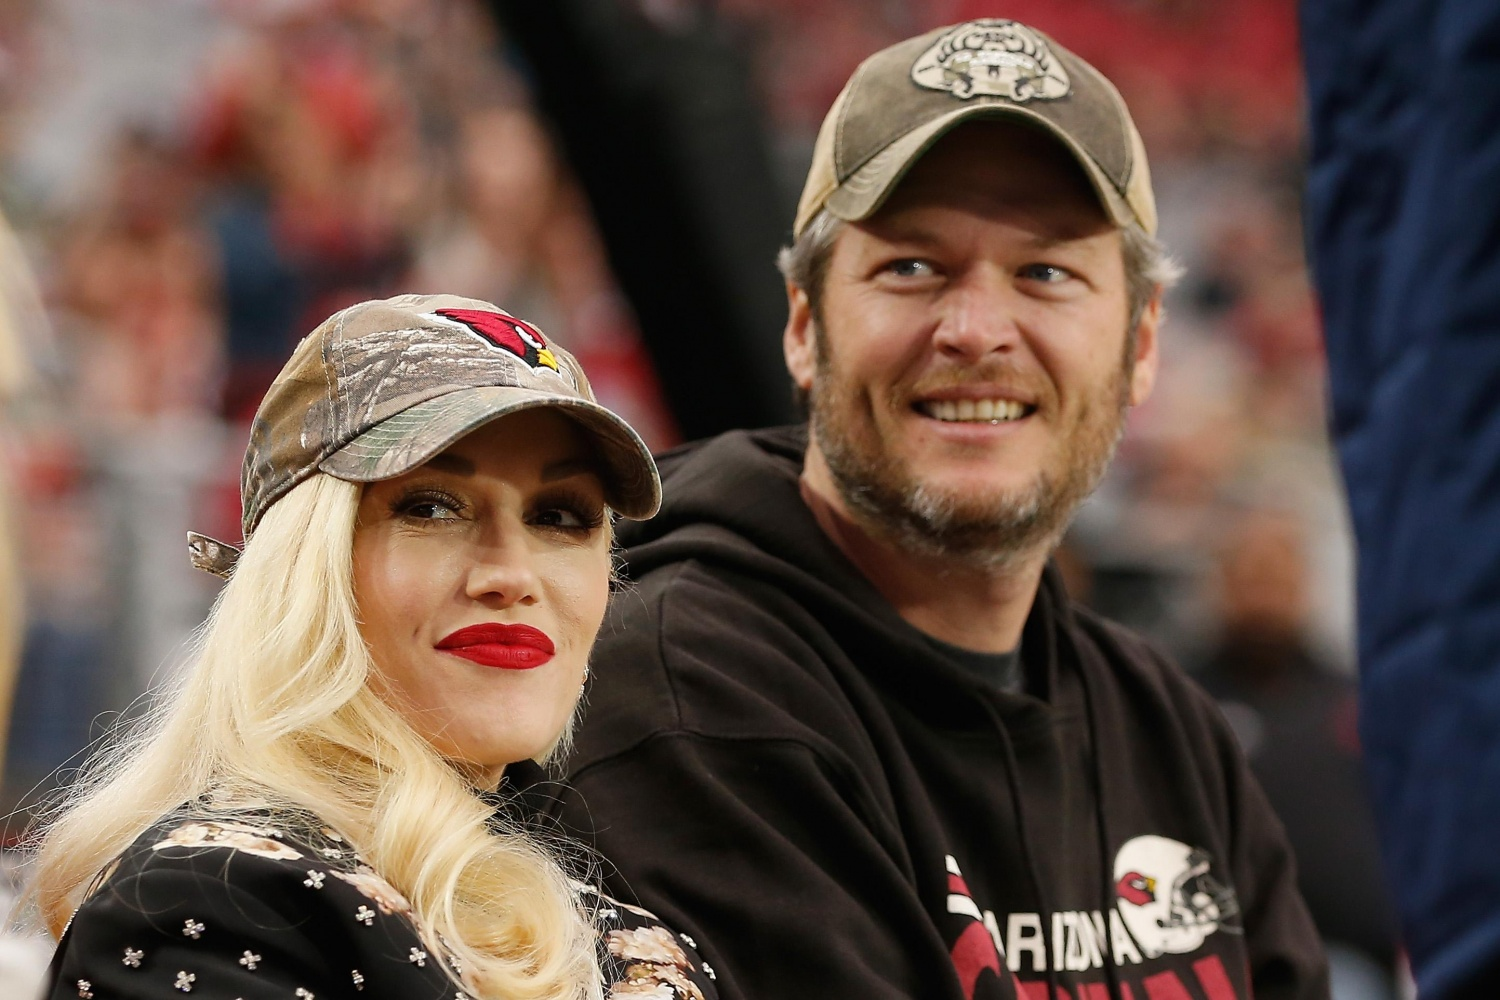 Gwen Stefani discusses marrying Blake Shelton with Ellen DeGeneres